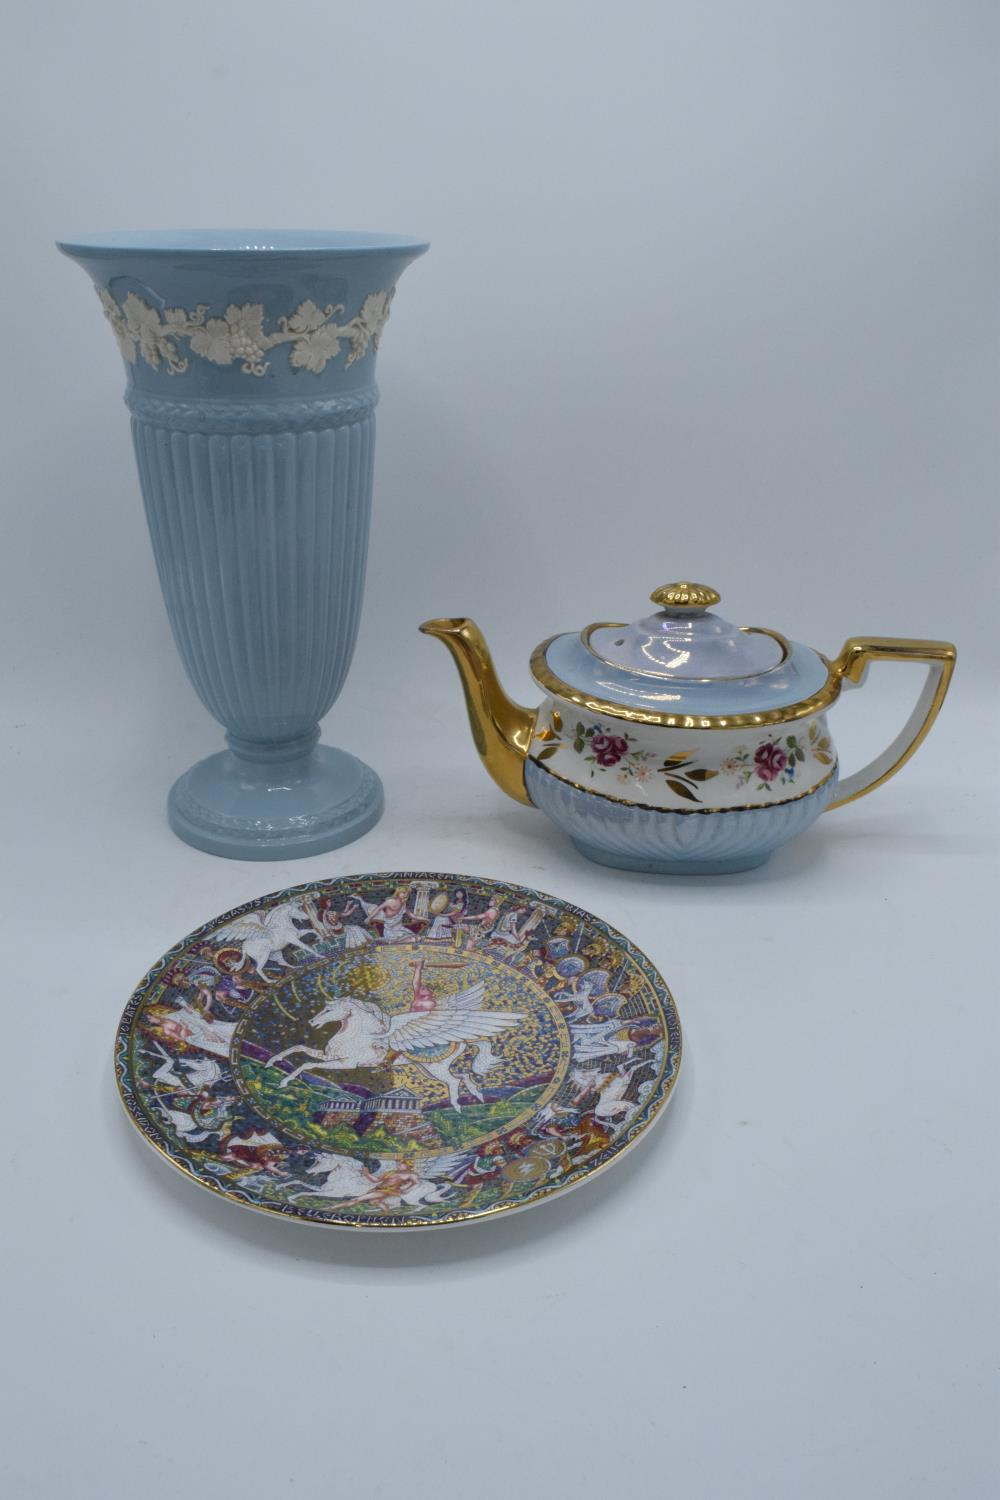 A collection of items to include a large Wedgwood Queensware vase, a Royal Worcester plate of